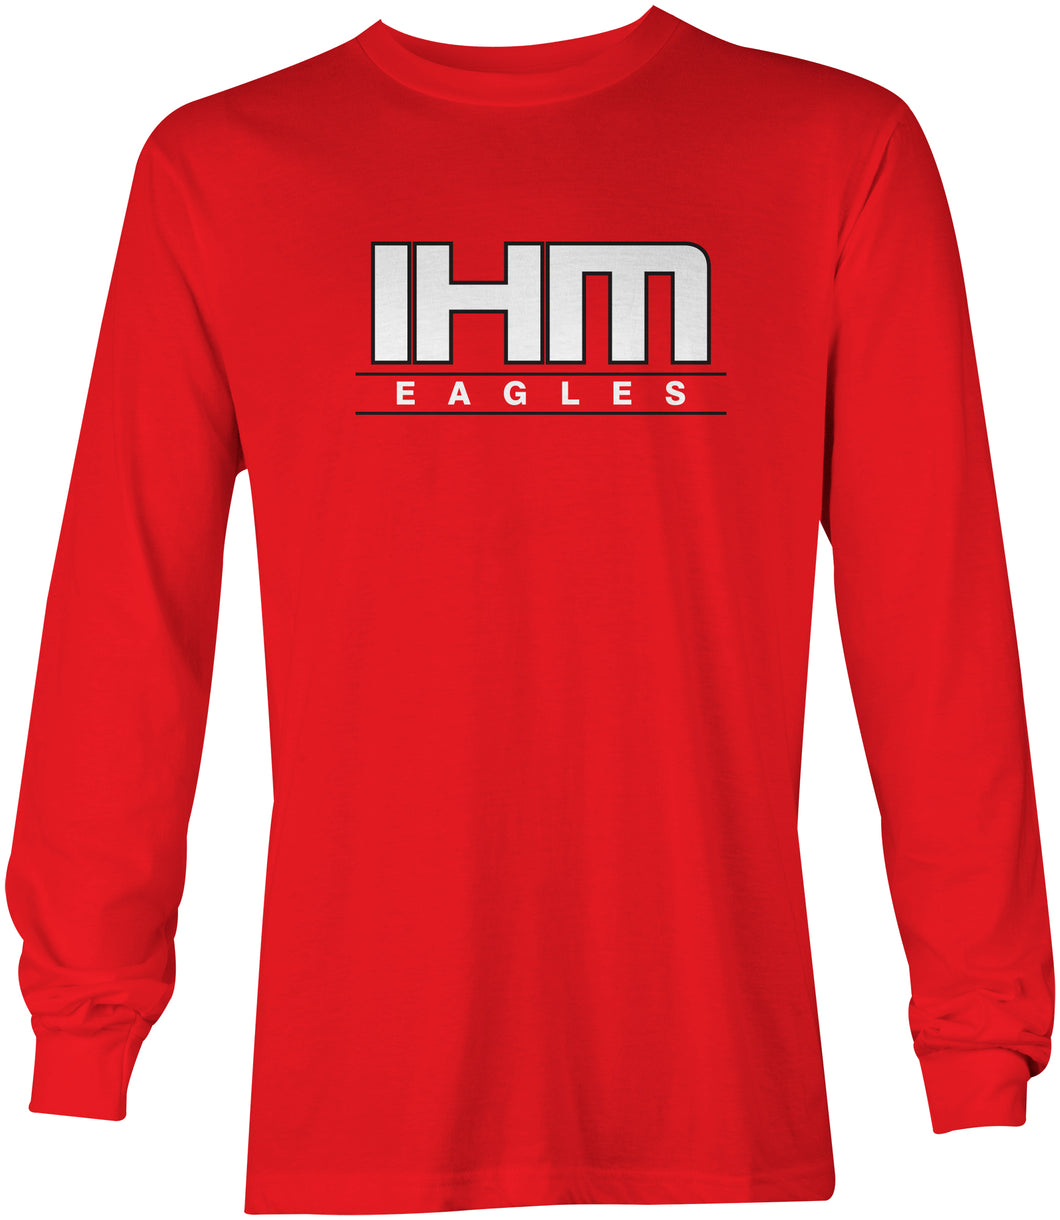 Red Eagles Long Sleeve T-Shirt